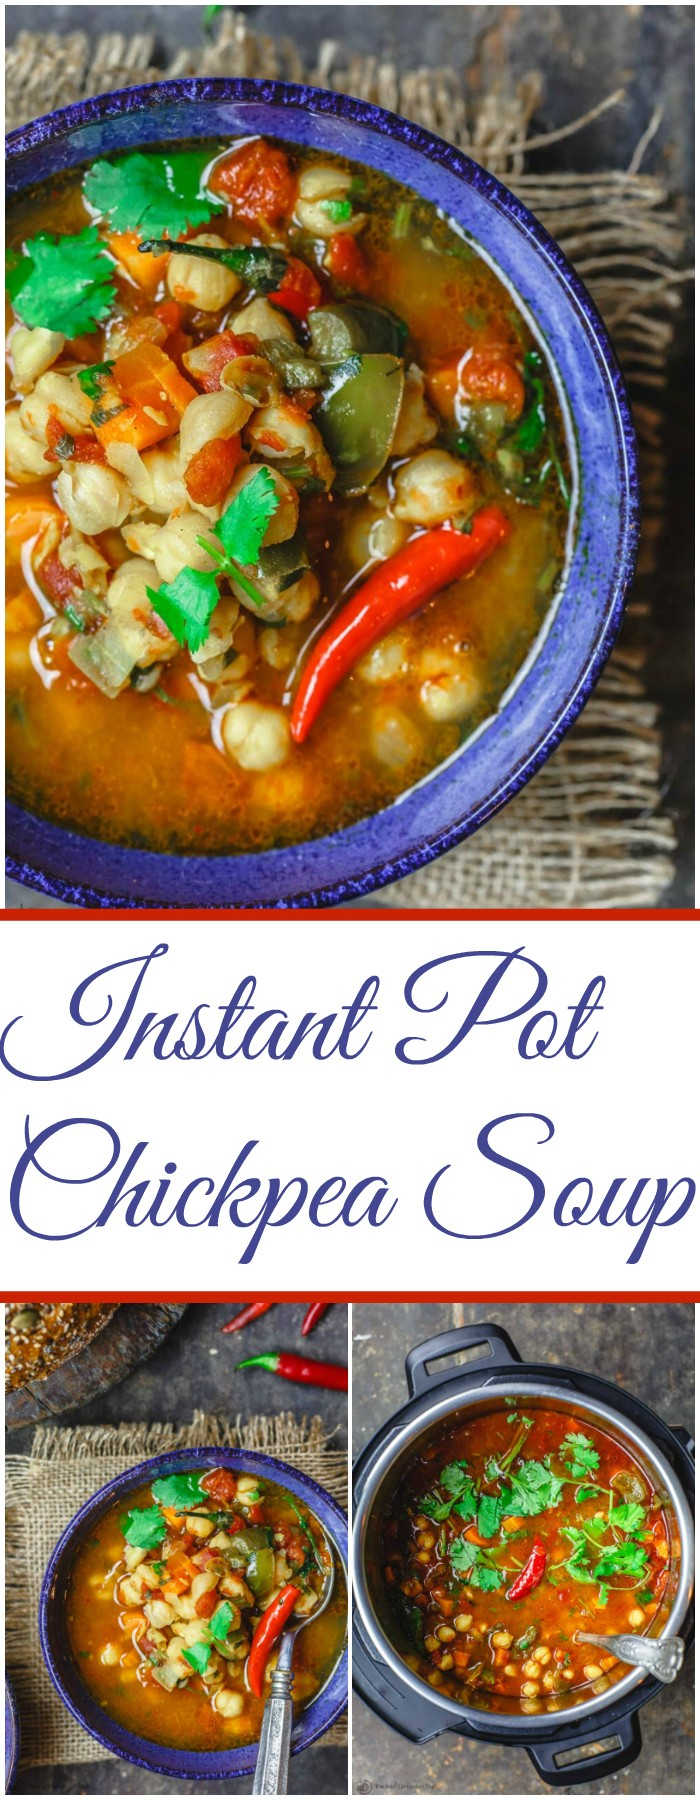 Instant Pot Chickpea Soup